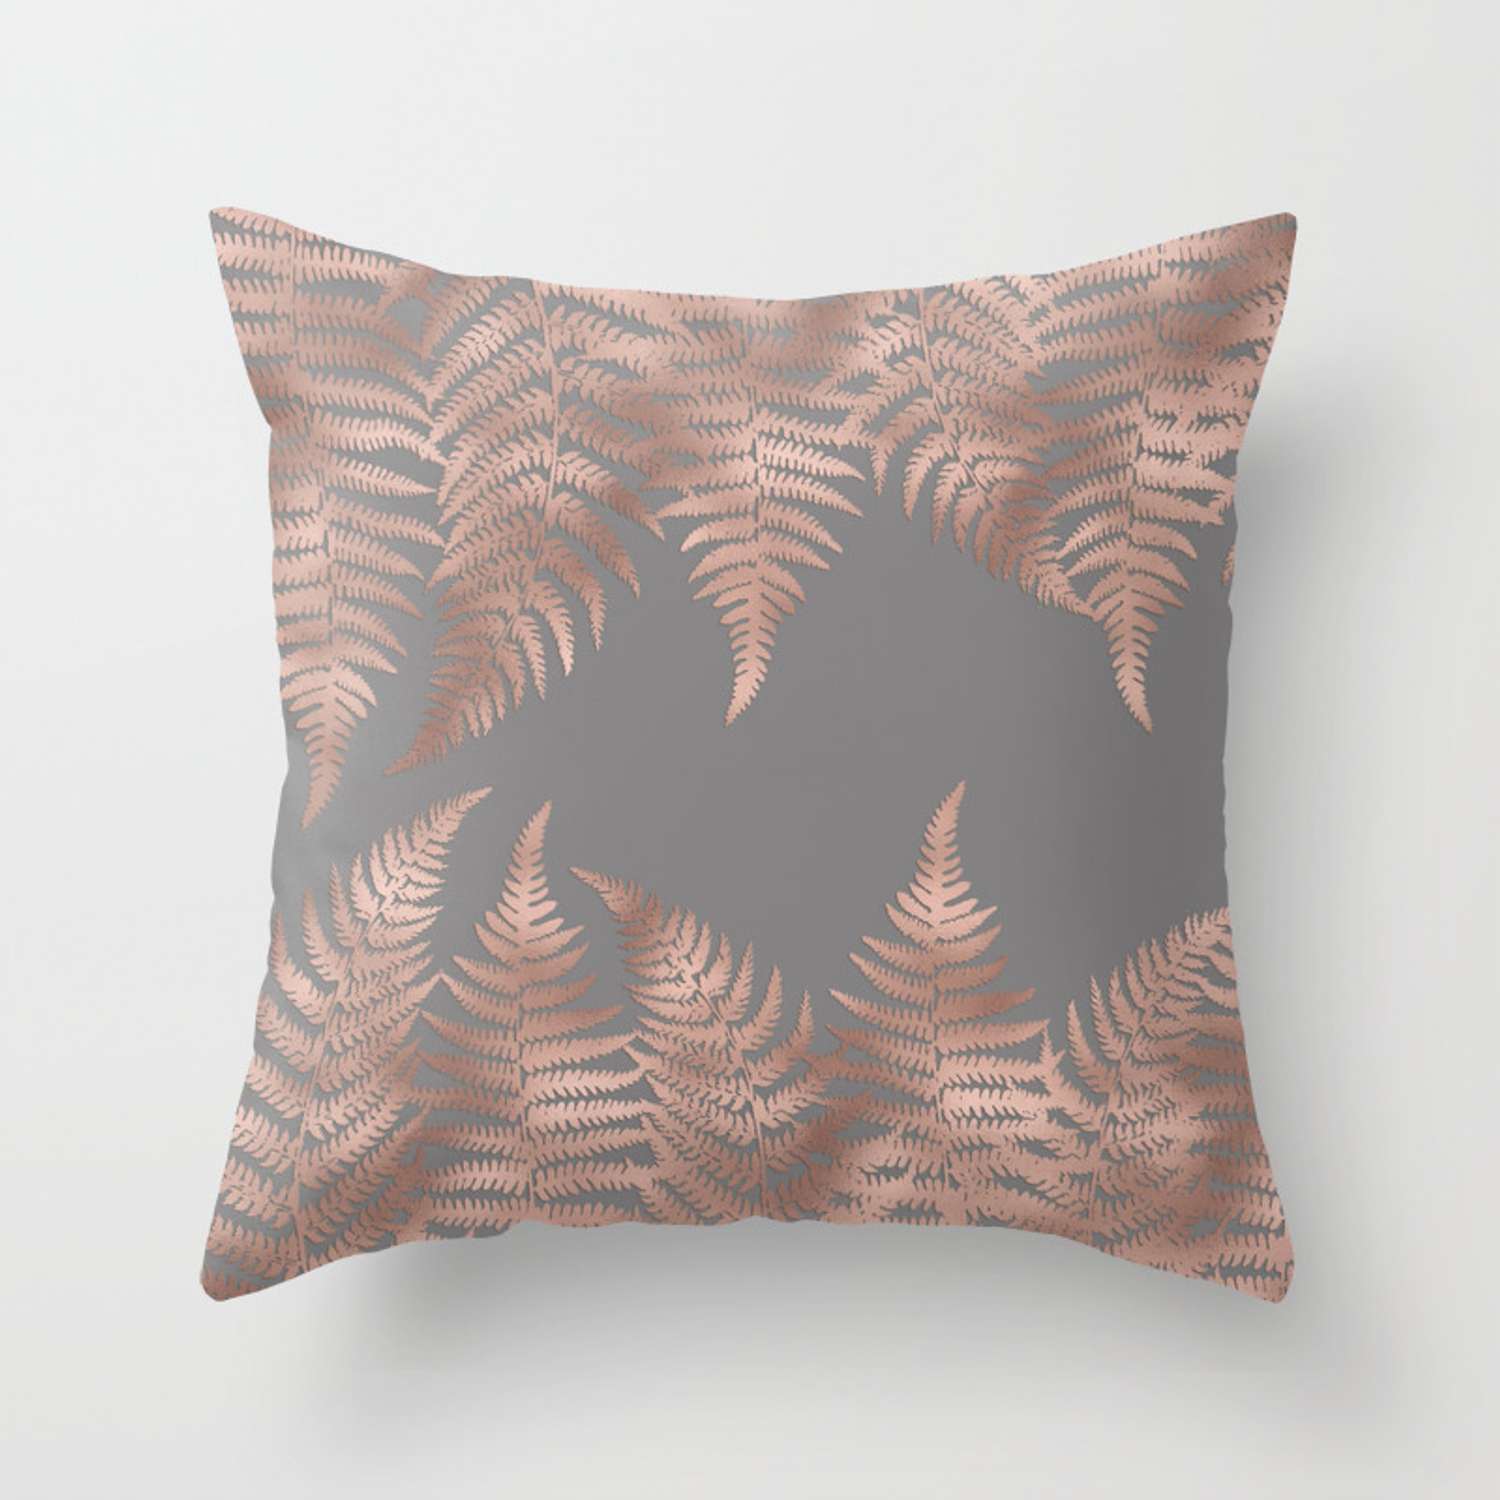 Rosegold Pink Metal Fern Leaves On Grey Background Throw Pillow By Simplicity Of Live Society6